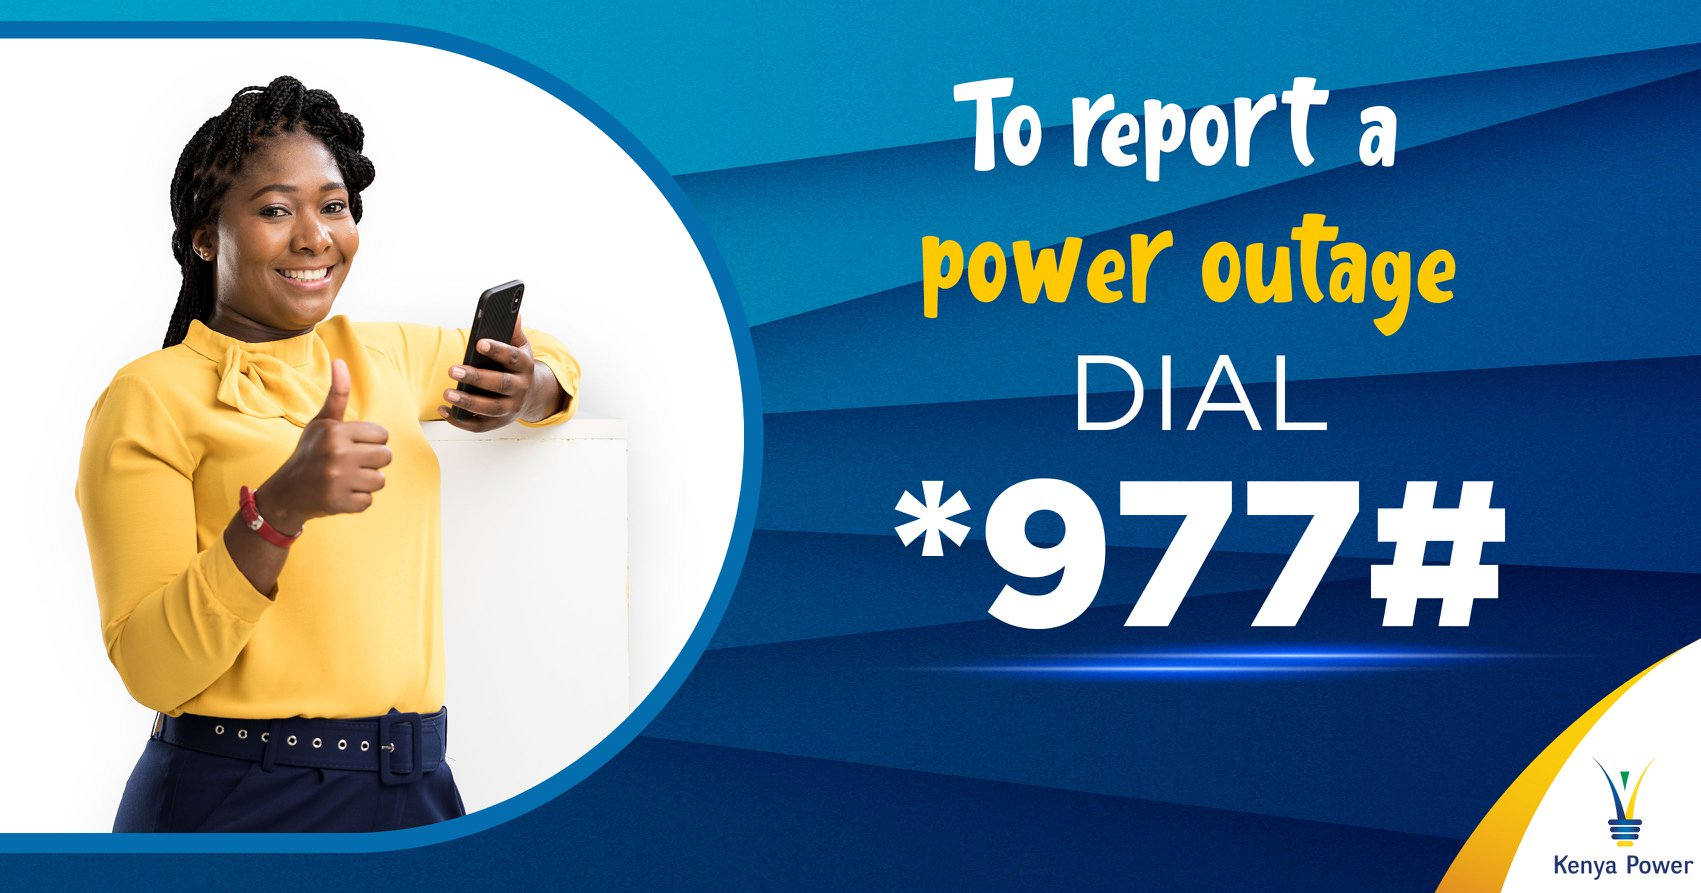 How To Report Power Outage Via *977#